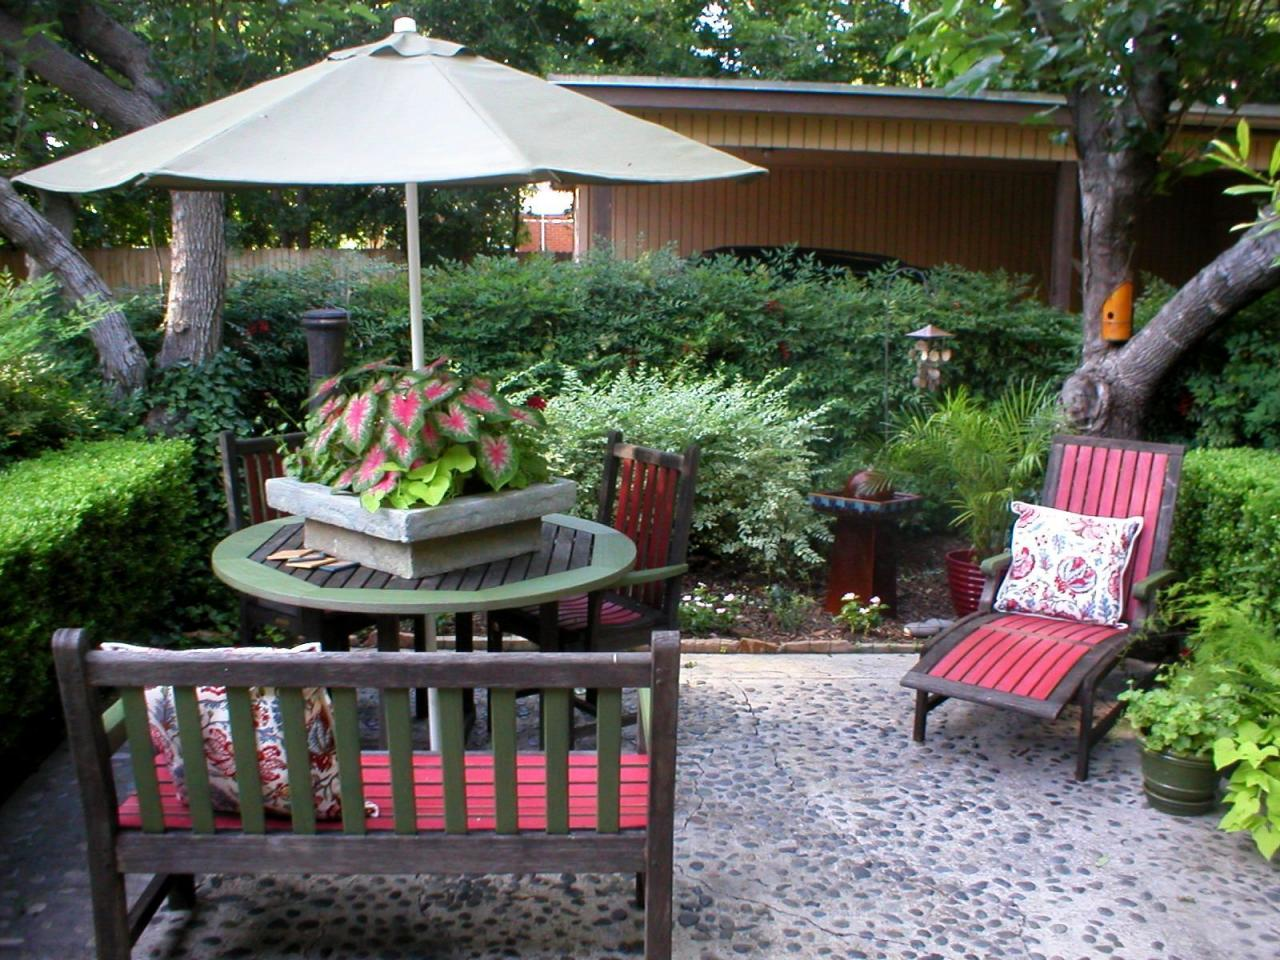 Add Inexpensive Touches to Dress Up Outdoor Spaces